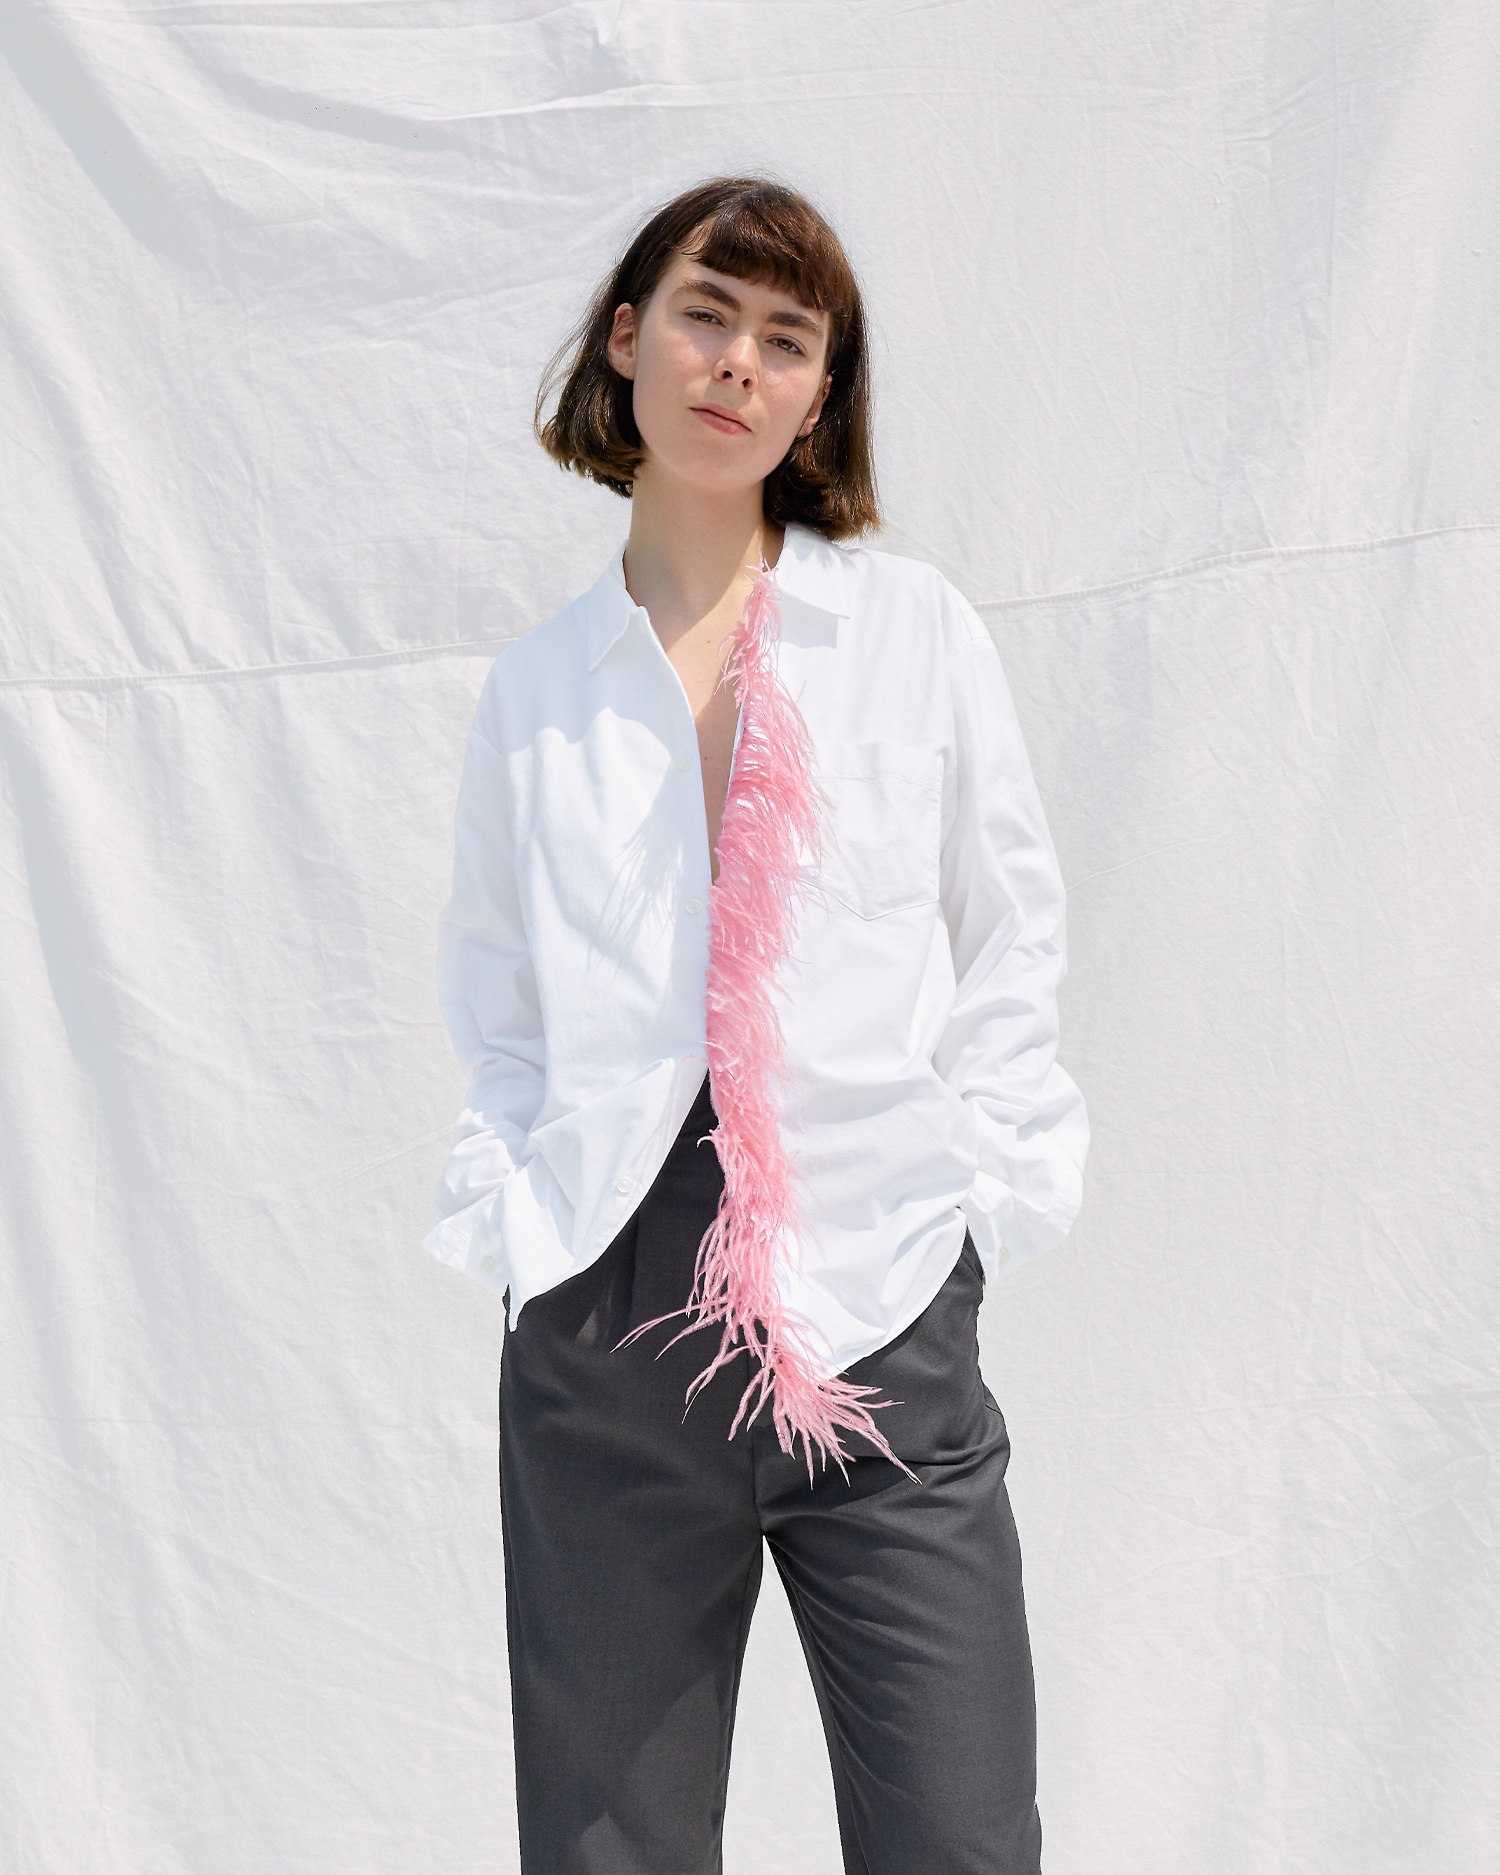 Shop Dress Shirt with Pink Feathers by One DNA